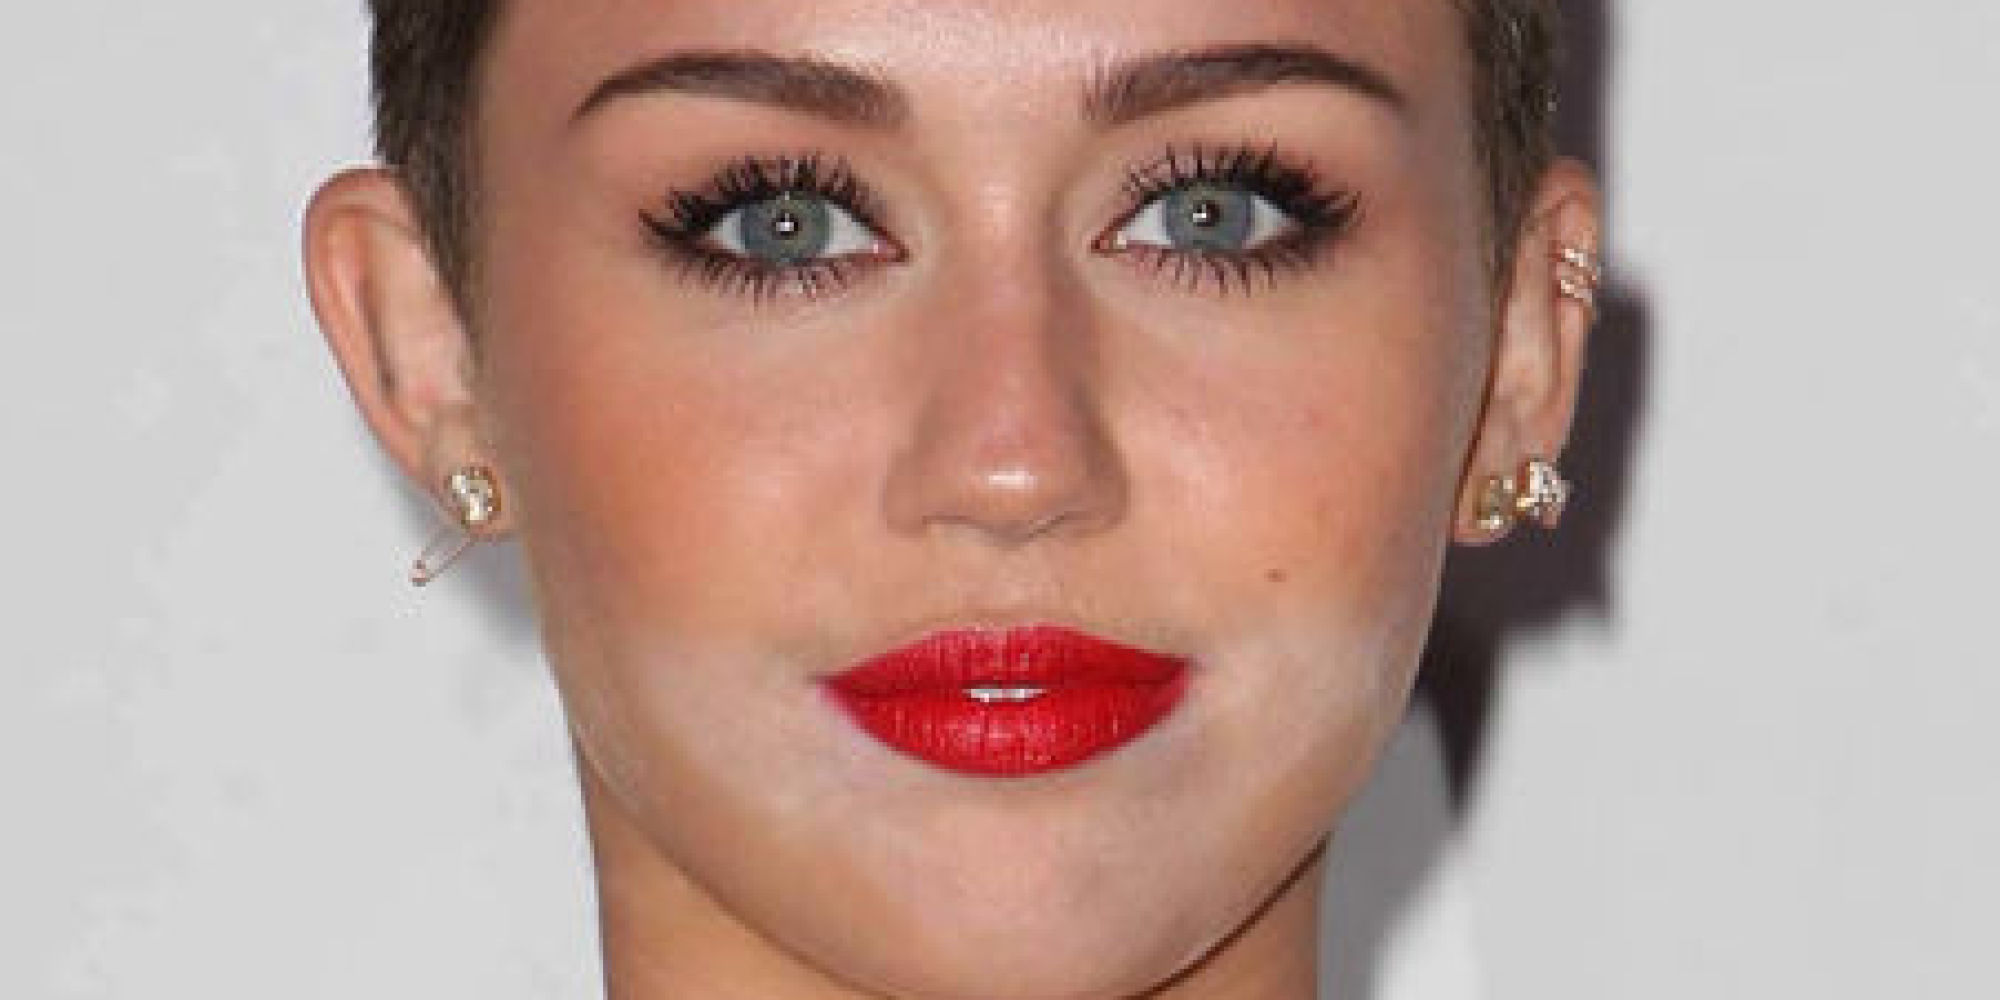 uncensored images of miley cyrus tounge